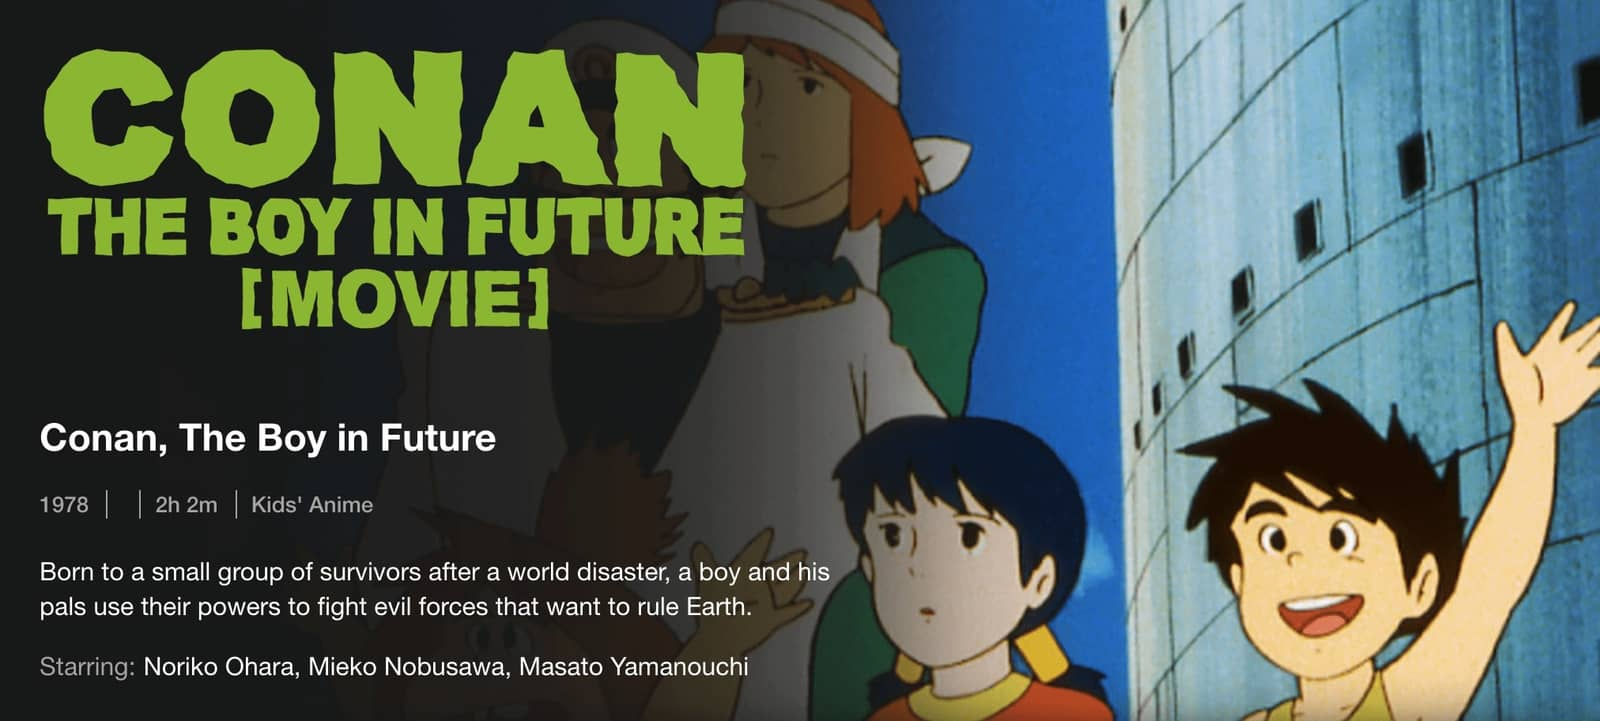 Conan The Boy in Future